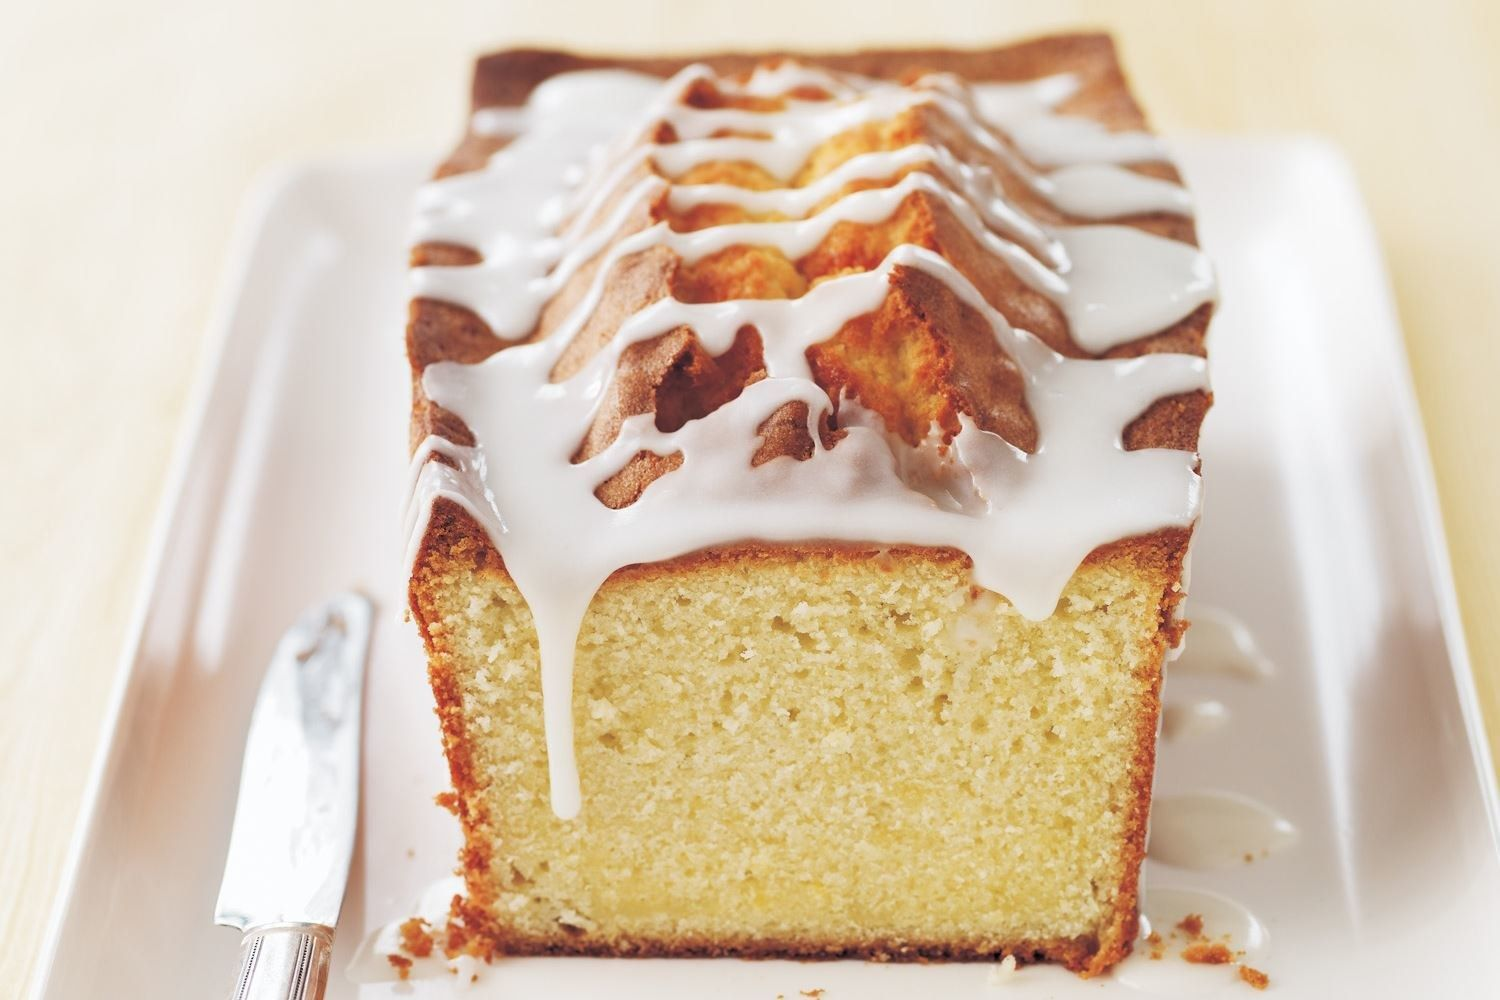 Lemon Lemon Loaf | Desserts, Lemon loaf, Dessert recipes